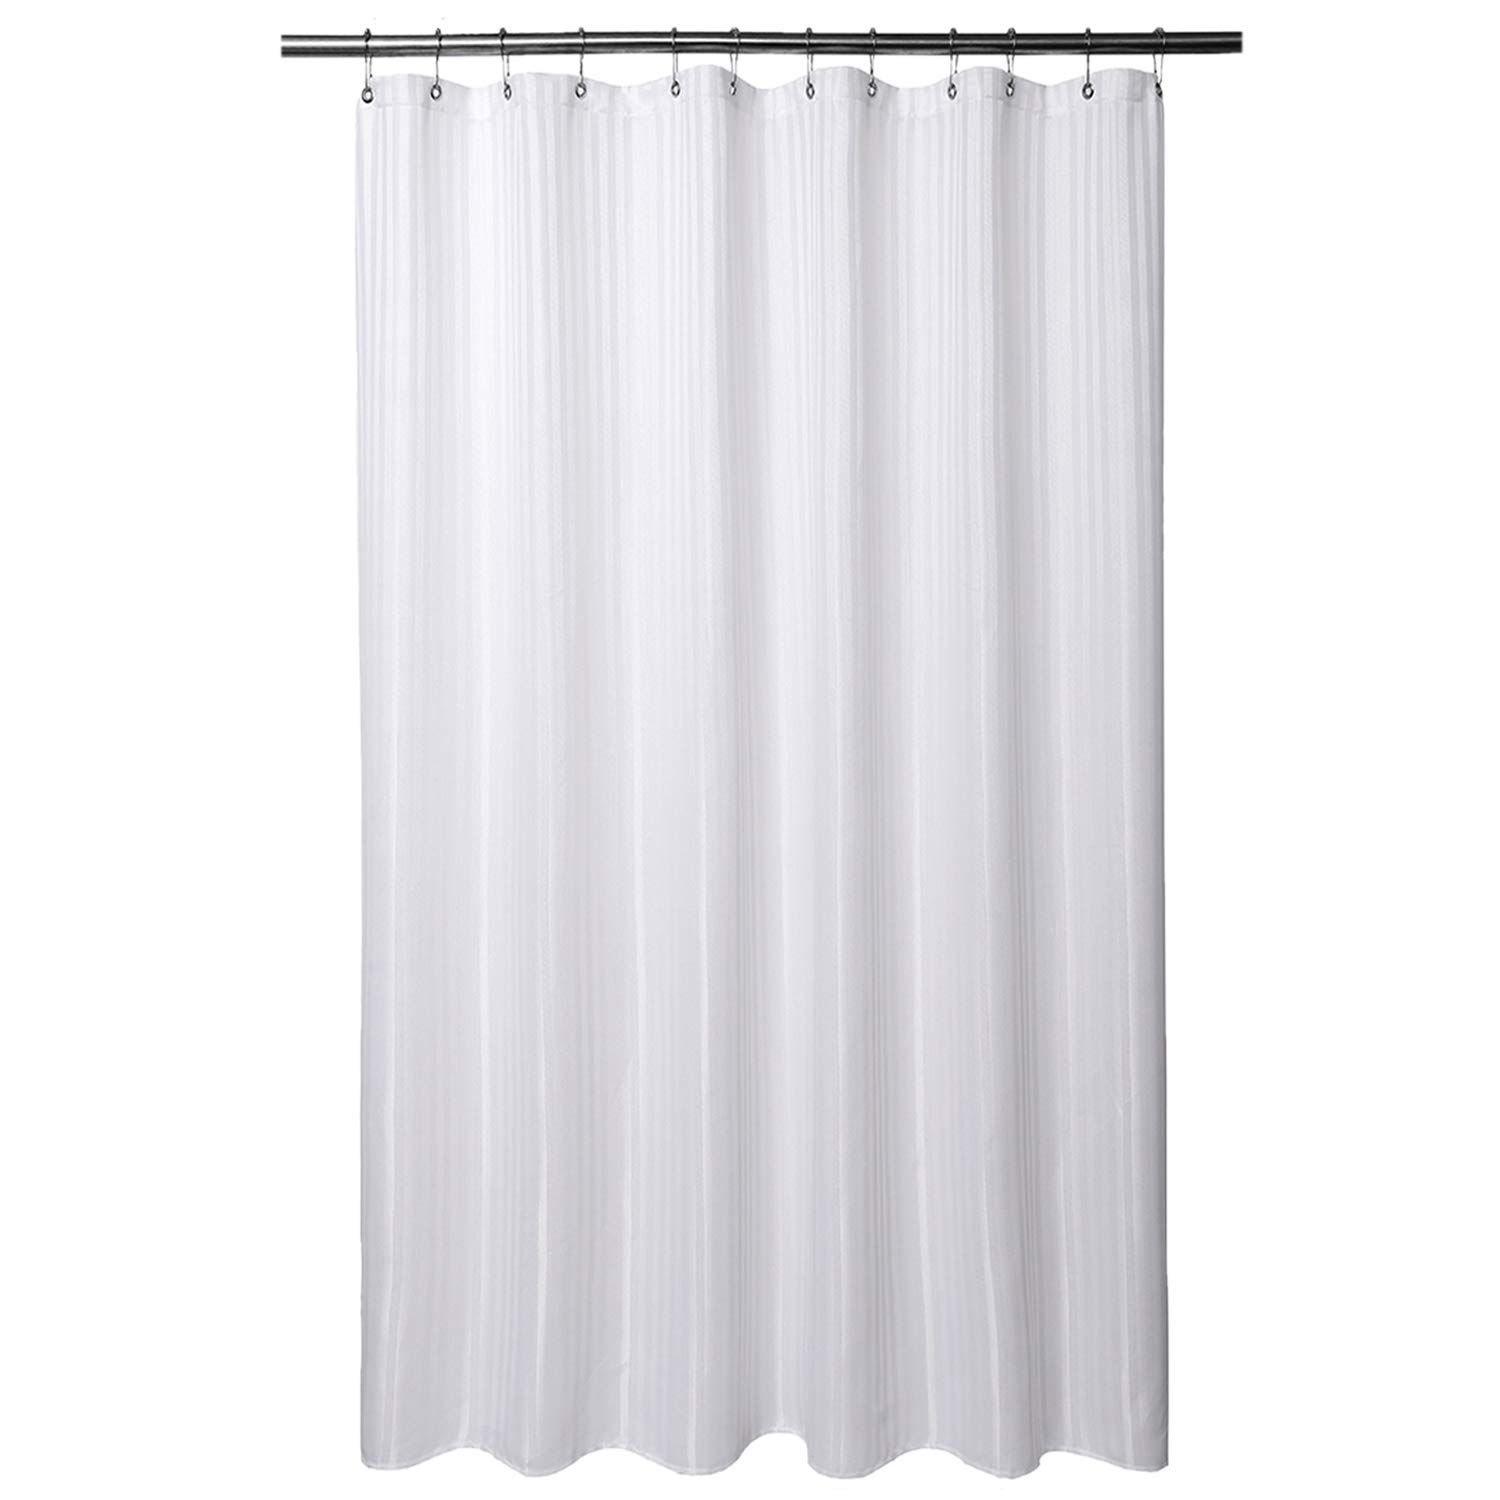 Barossa Design Fabric Shower Curtain 80 Inches Long Hotel Grade Machine Washable Water In 2020 Fabric Shower